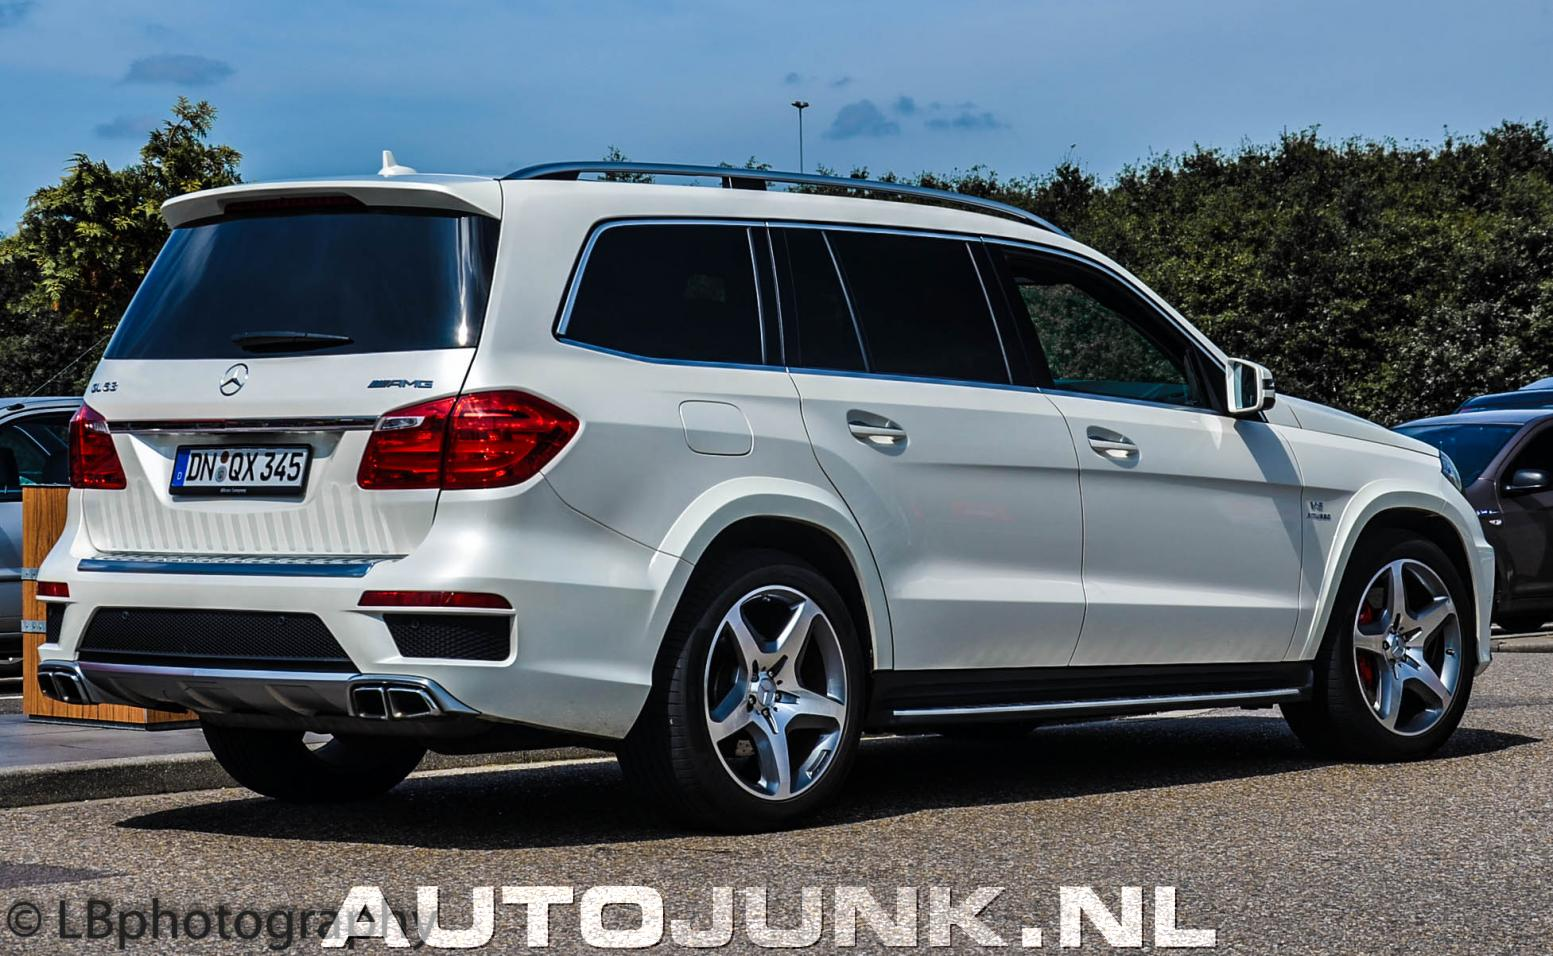 Mercedes benz gl 63 amg x166 foto 39 s 122066 for Mercedes benz gls 63 amg